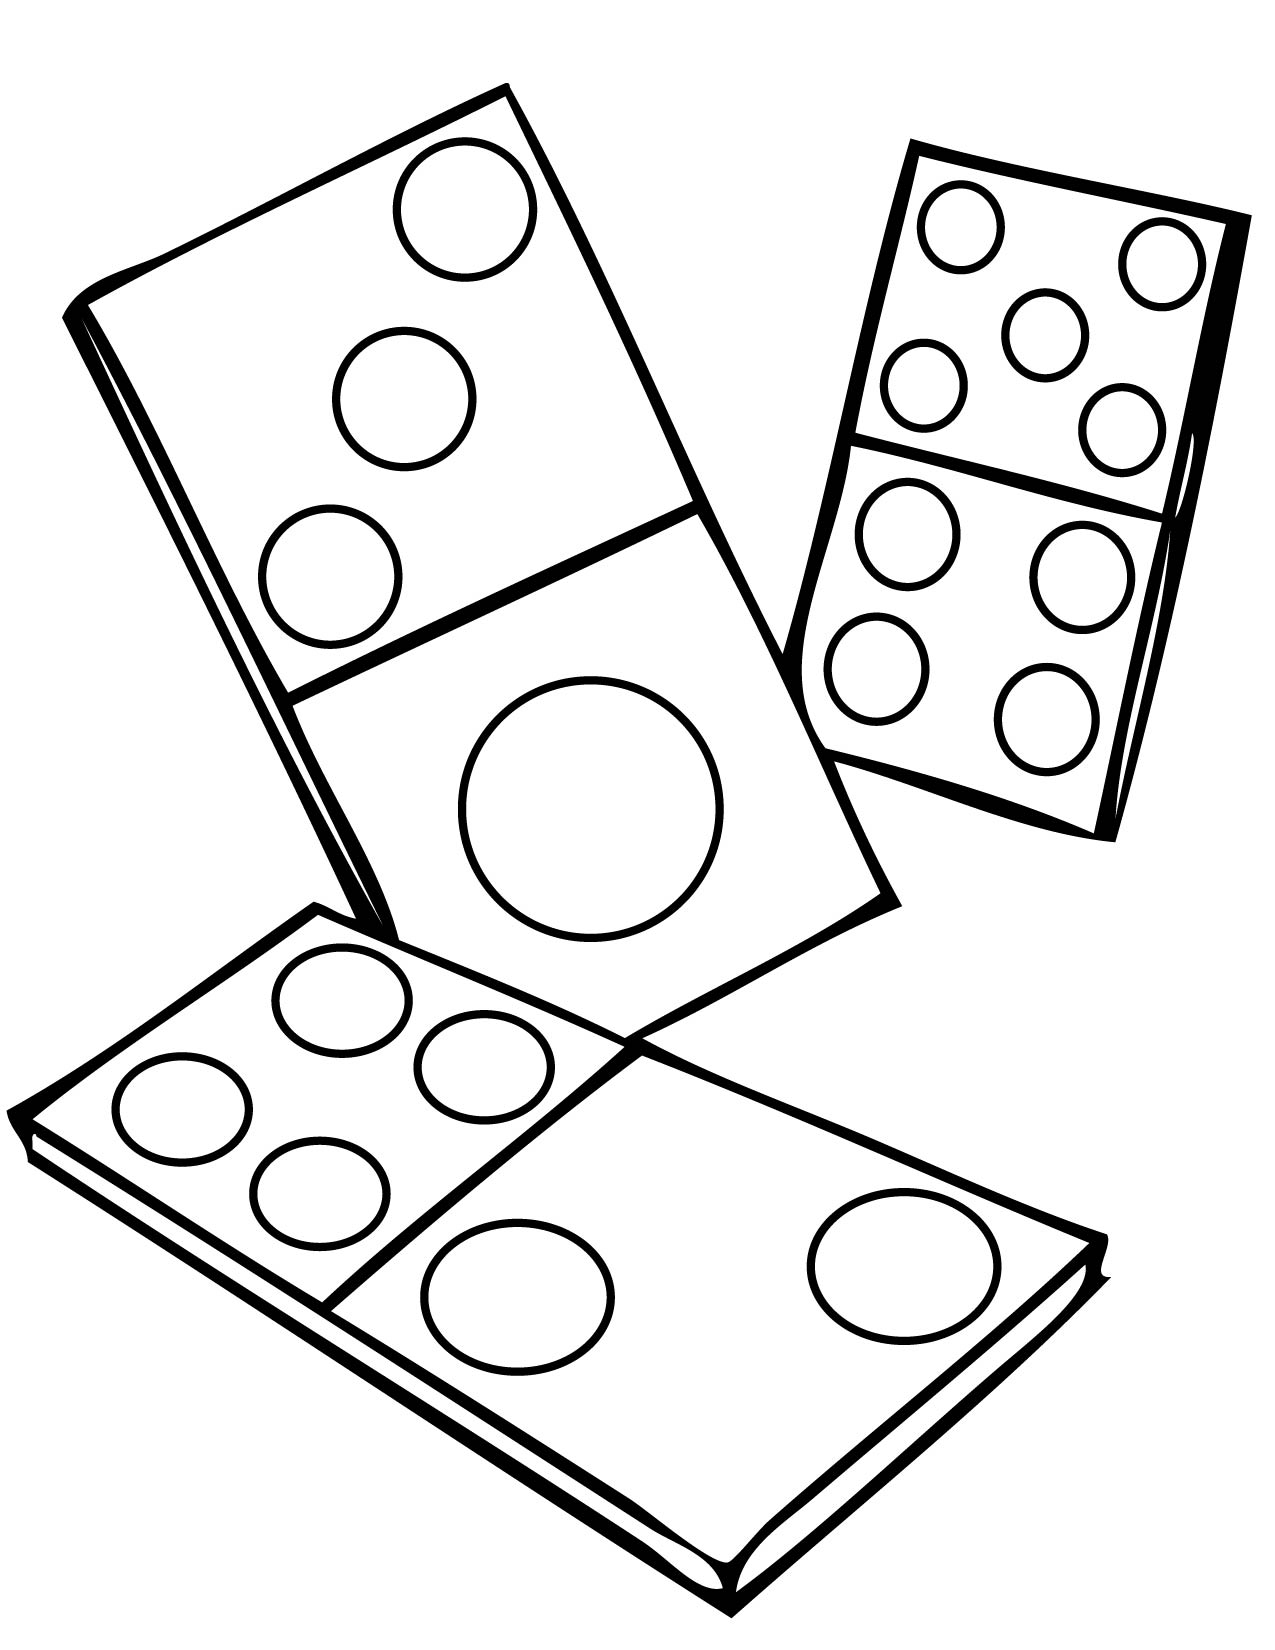 1275x1650 Interactive Coloring Pages Perspective Games Dominoes Page